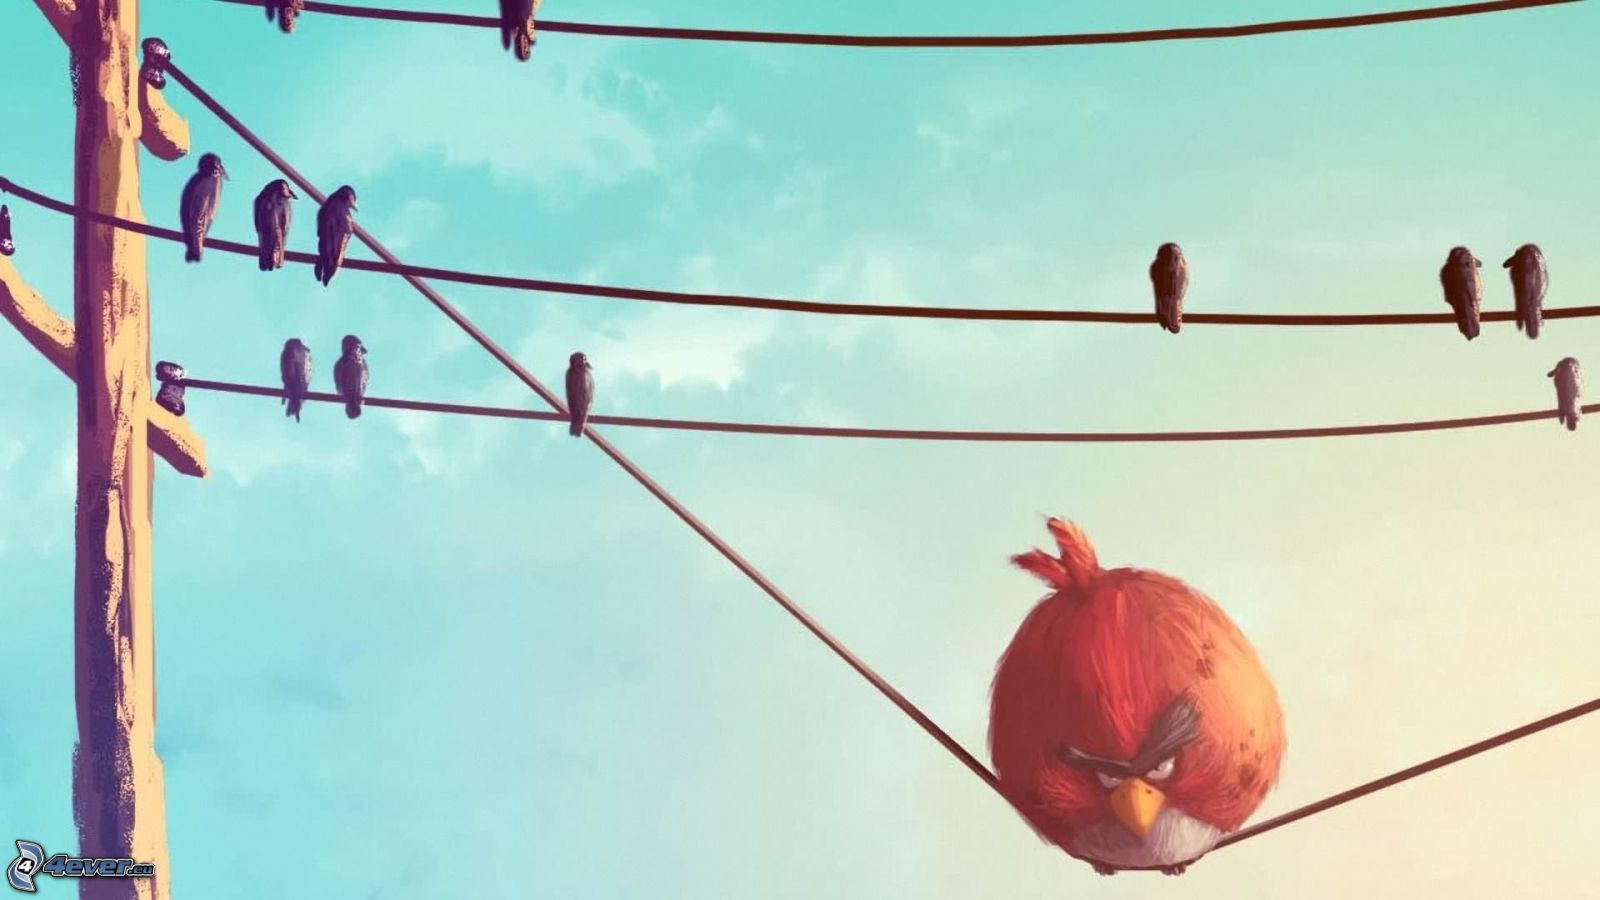 Angry Birds On Wire